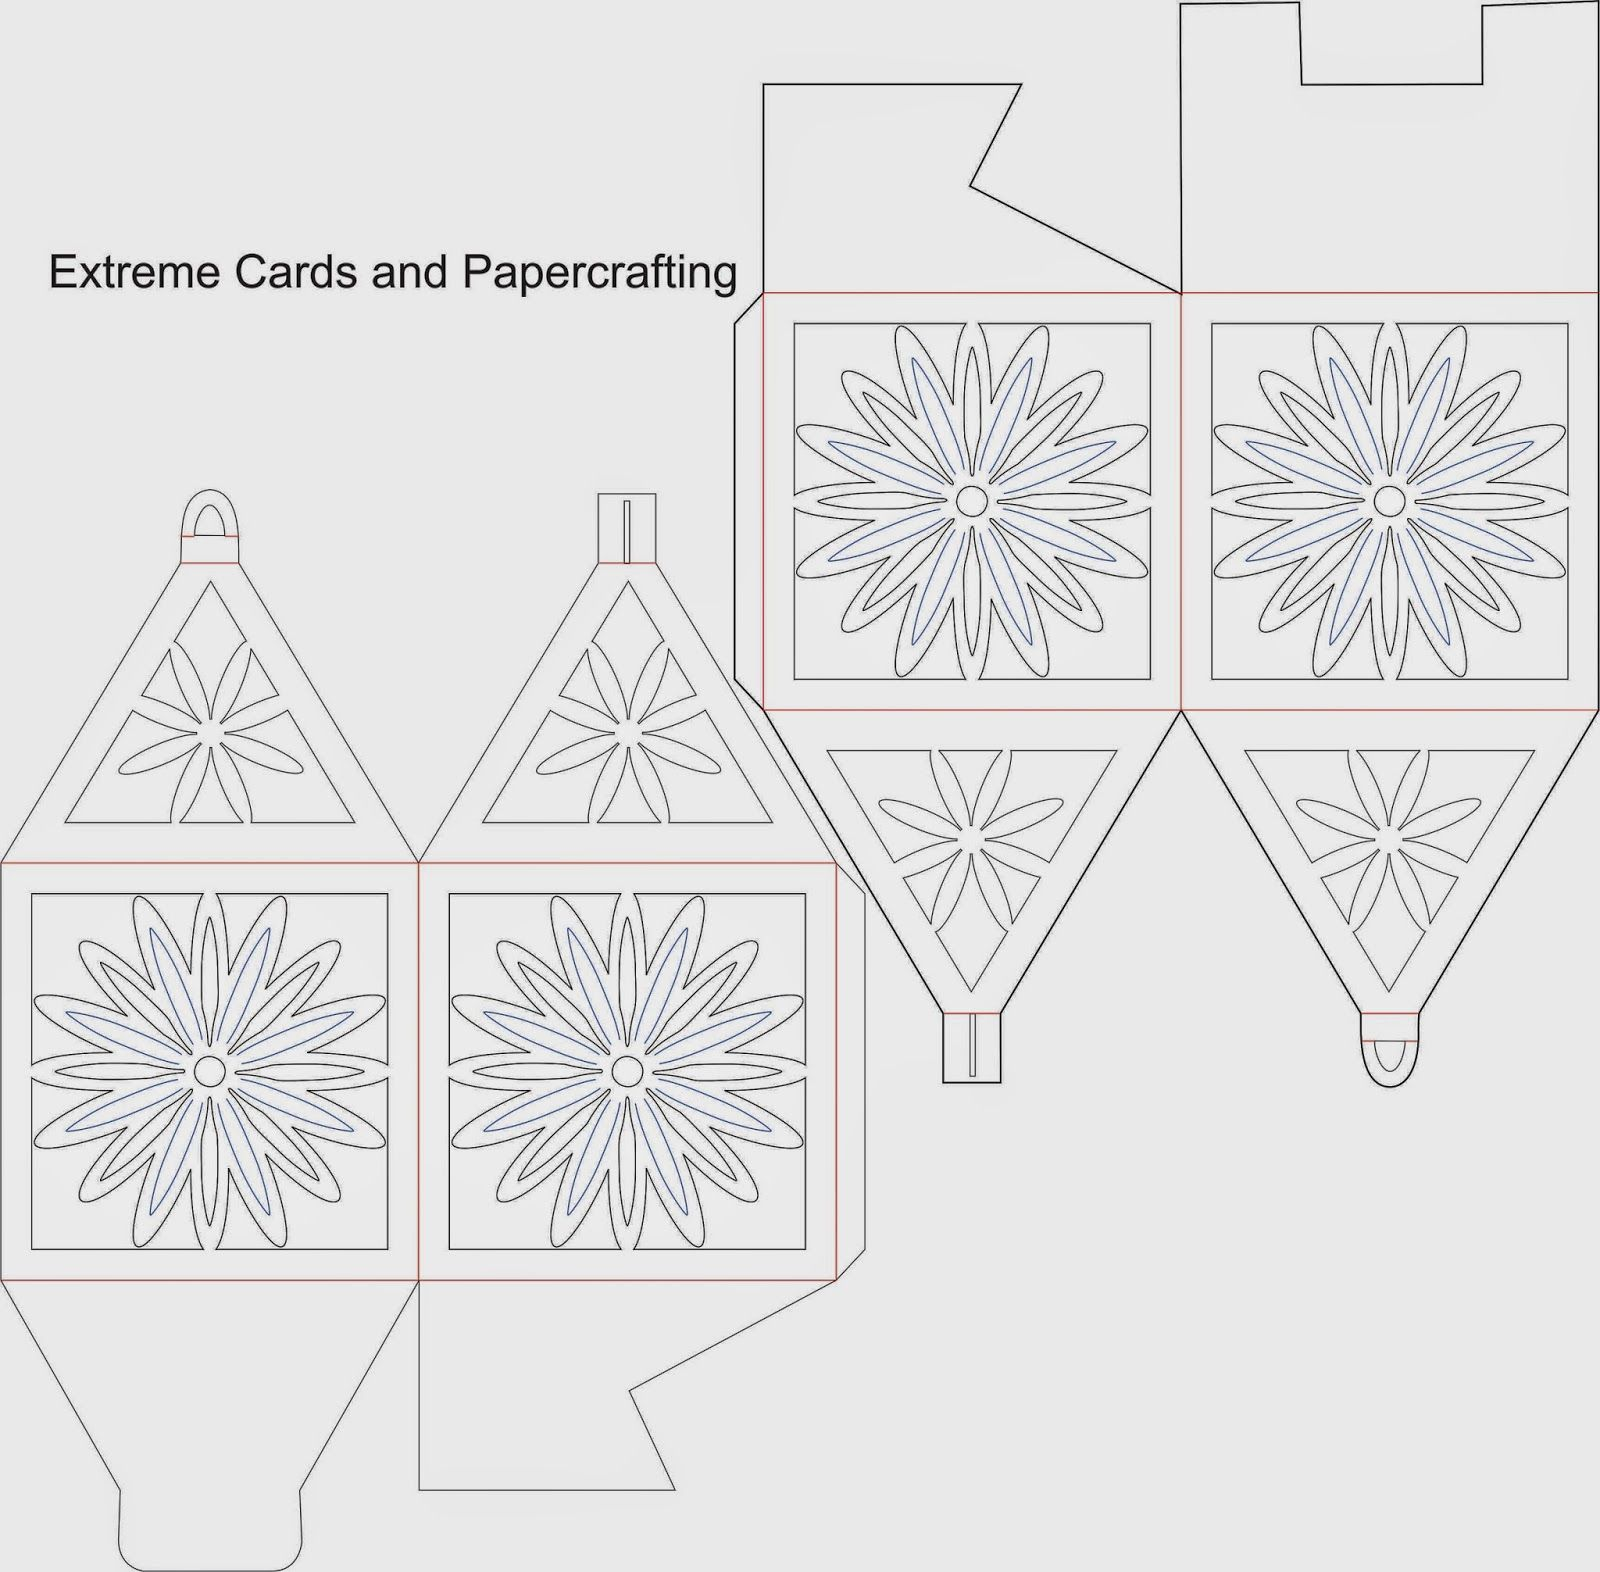 Extreme Cards And Papercrafting